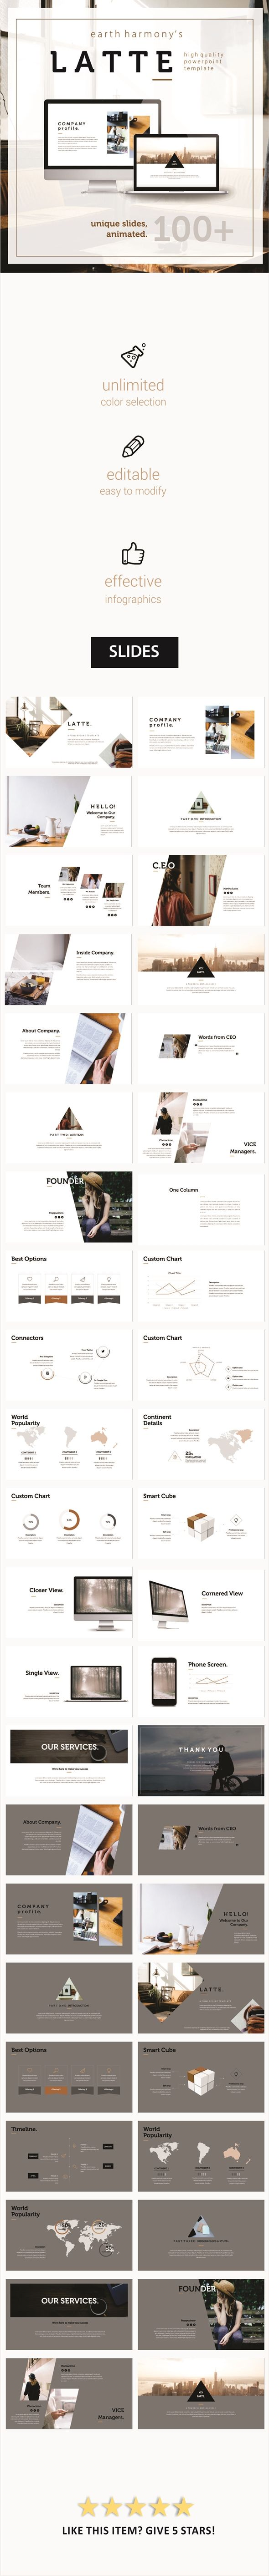 LATTE - exclusive template. (PowerPoint Templates)